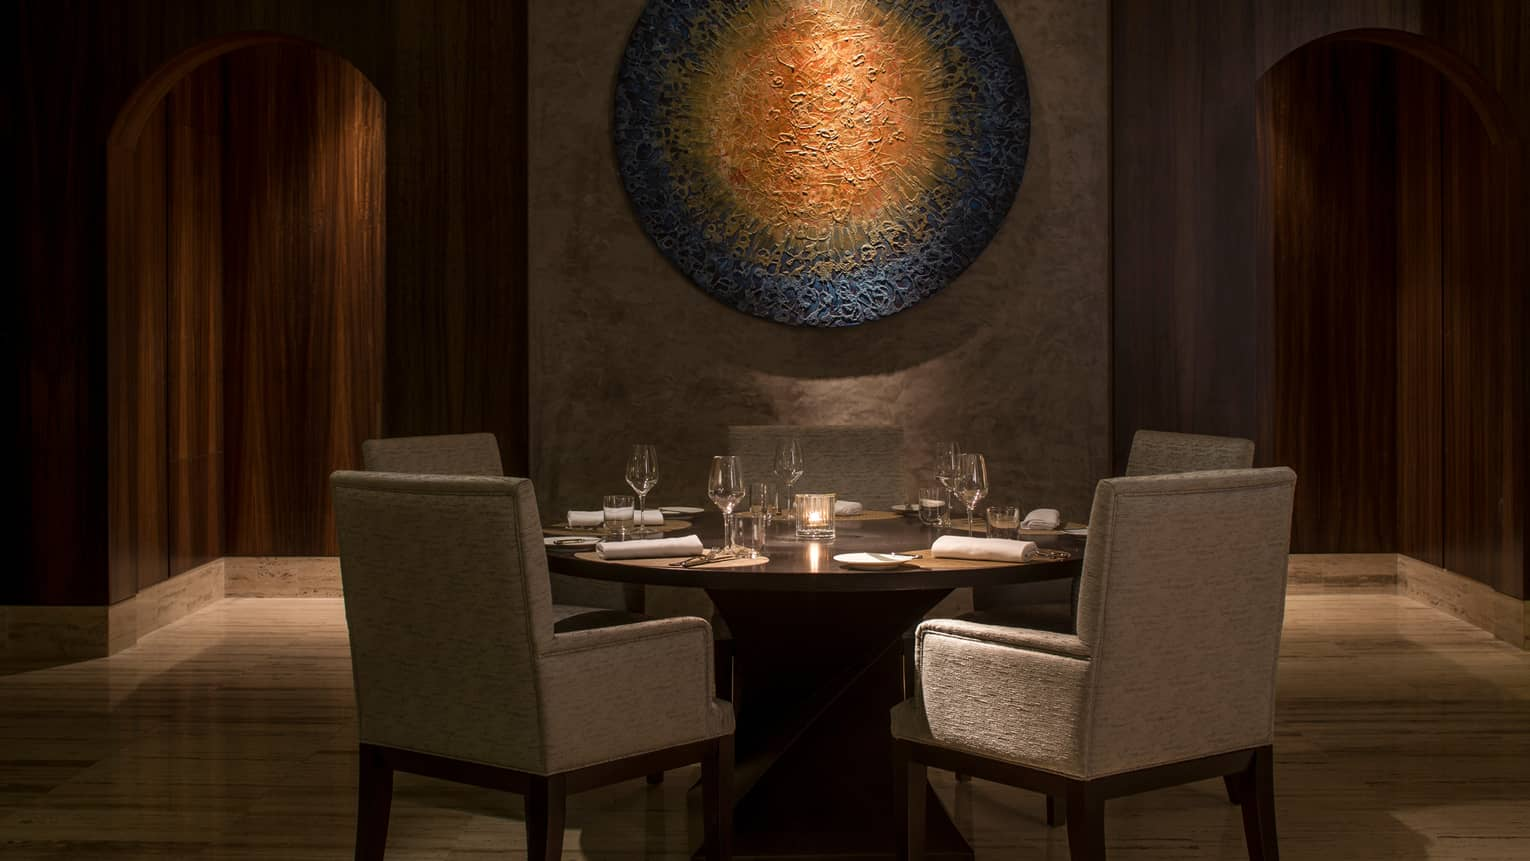 The Creek Restaurant Dining Table, Chairs Under Modern Round Art Sculpture  In Dimly Lit